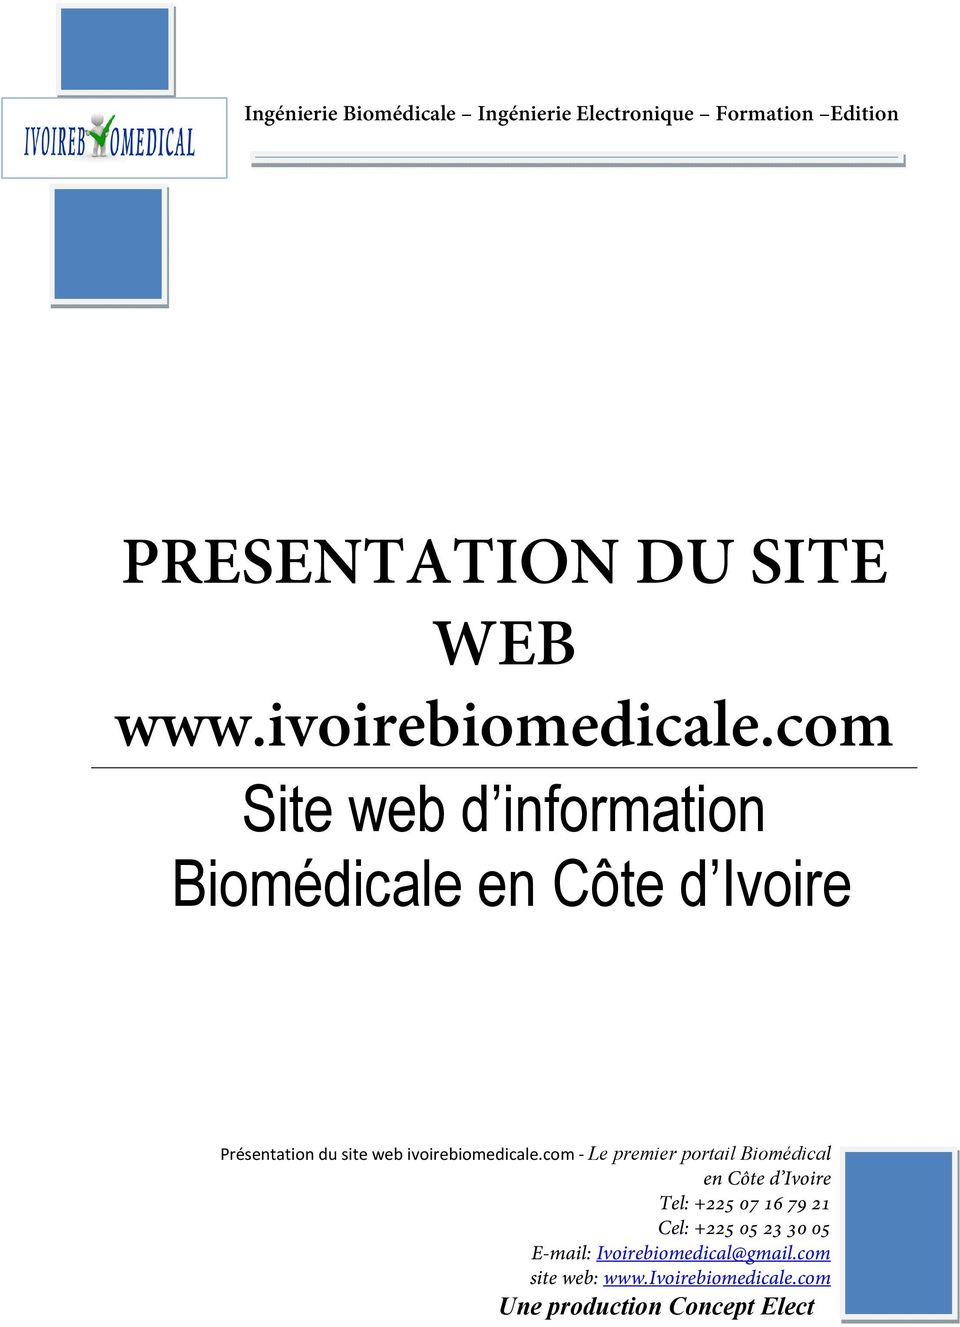 ivoirebiomedicale.